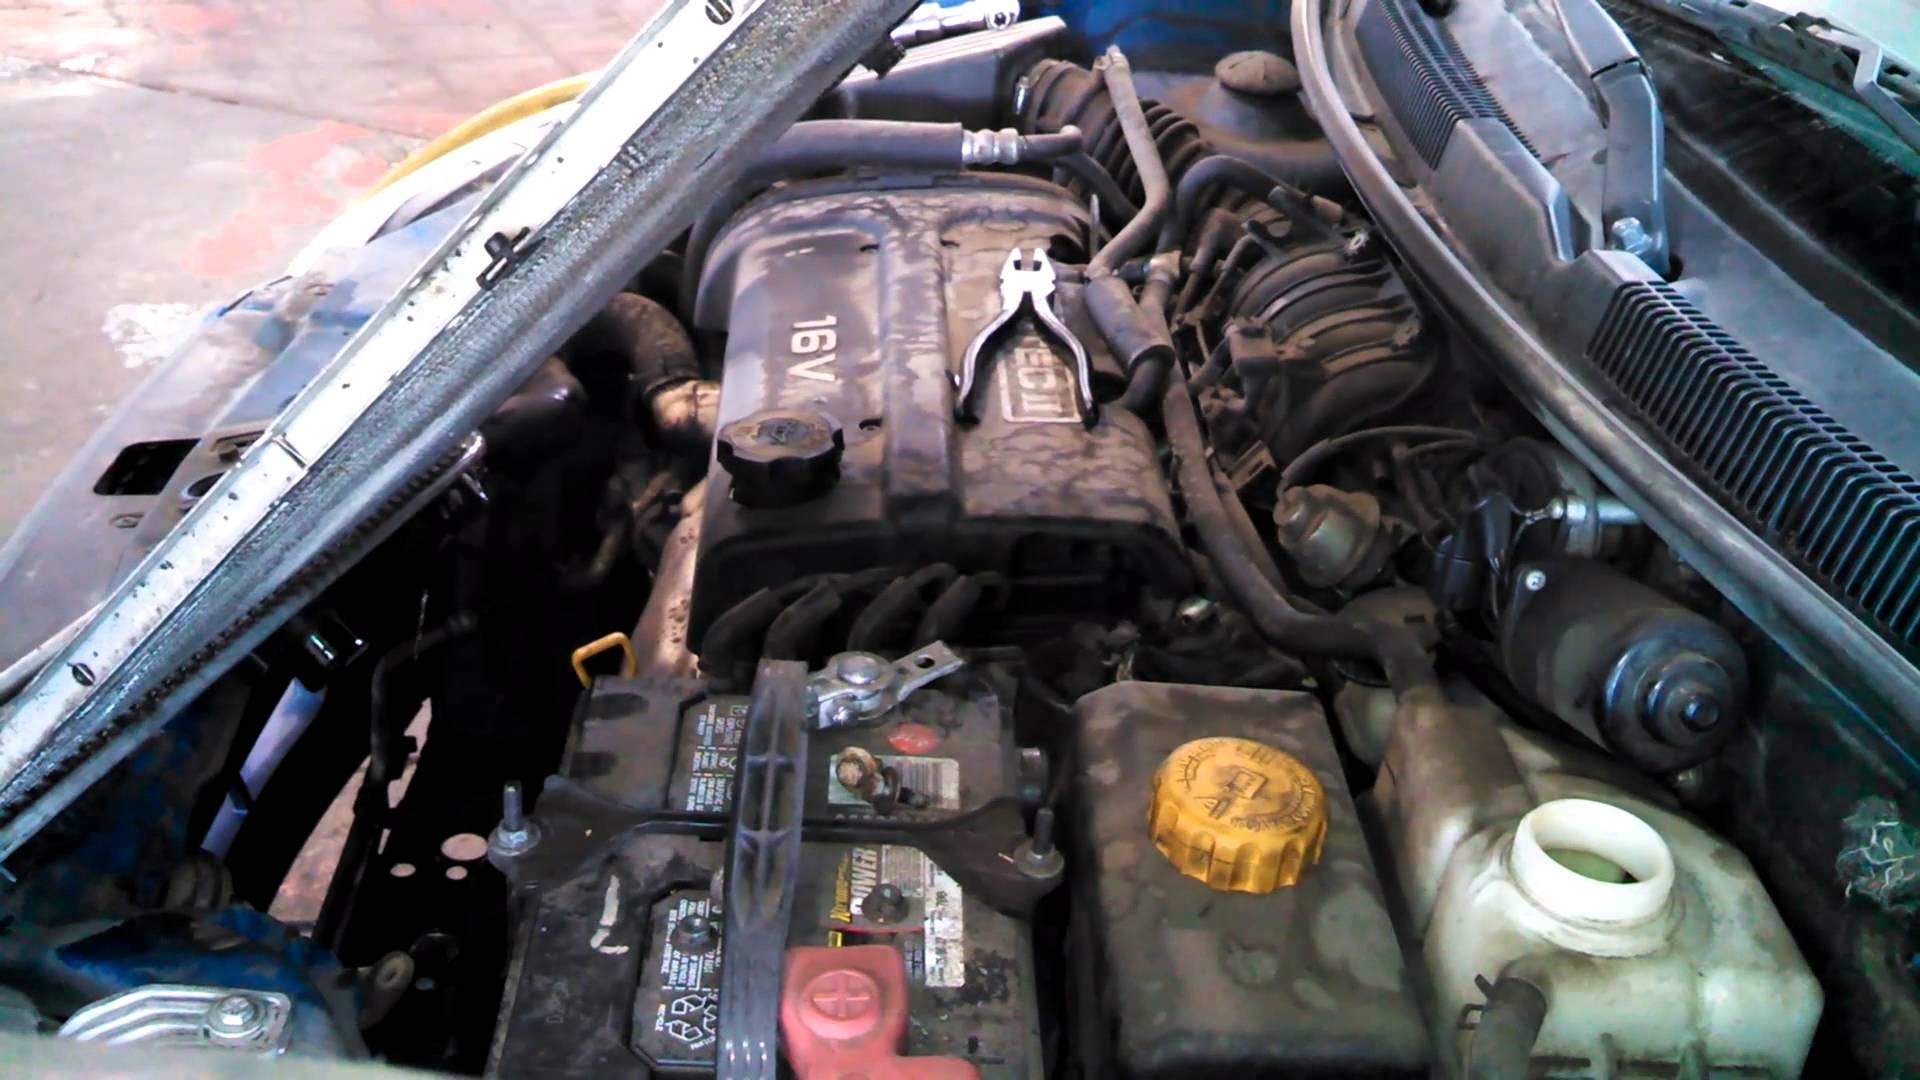 hight resolution of 2007 chevy aveo engine diagram radiator replacement chevrolet aveo 2007 install remove replace how of 2007